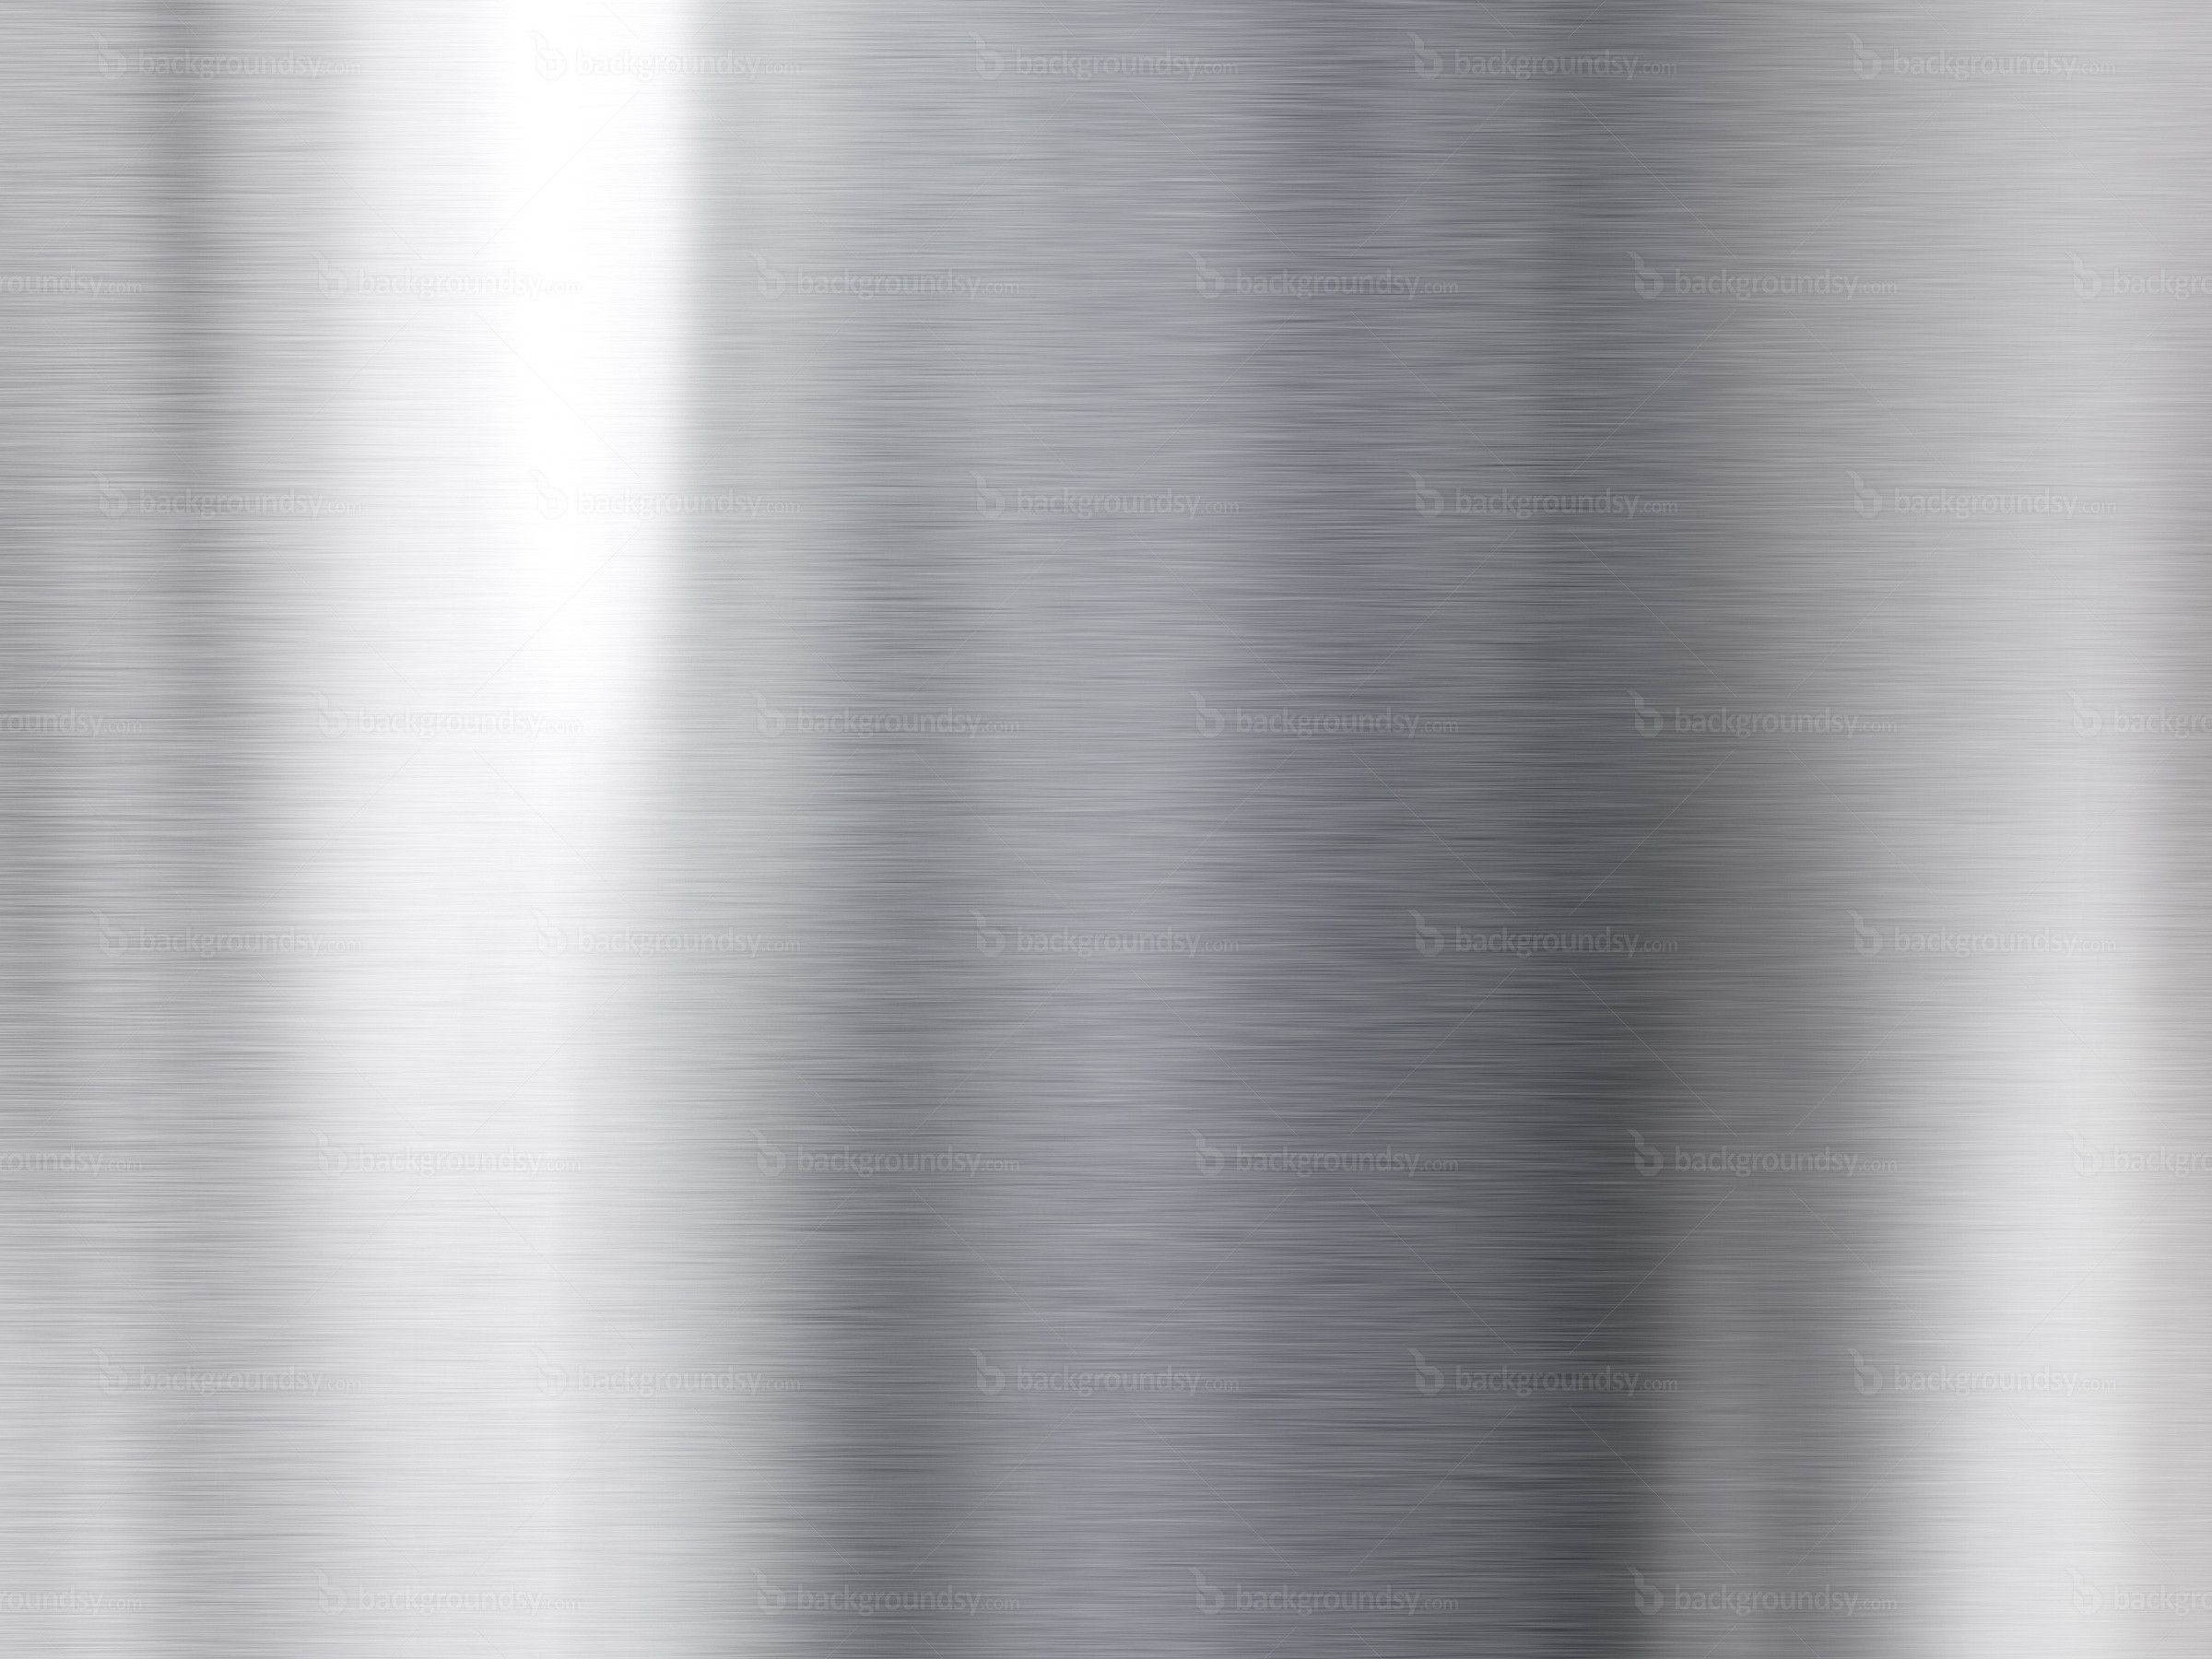 2400x1800 Shiny Silver Wallpaper (31+ images)